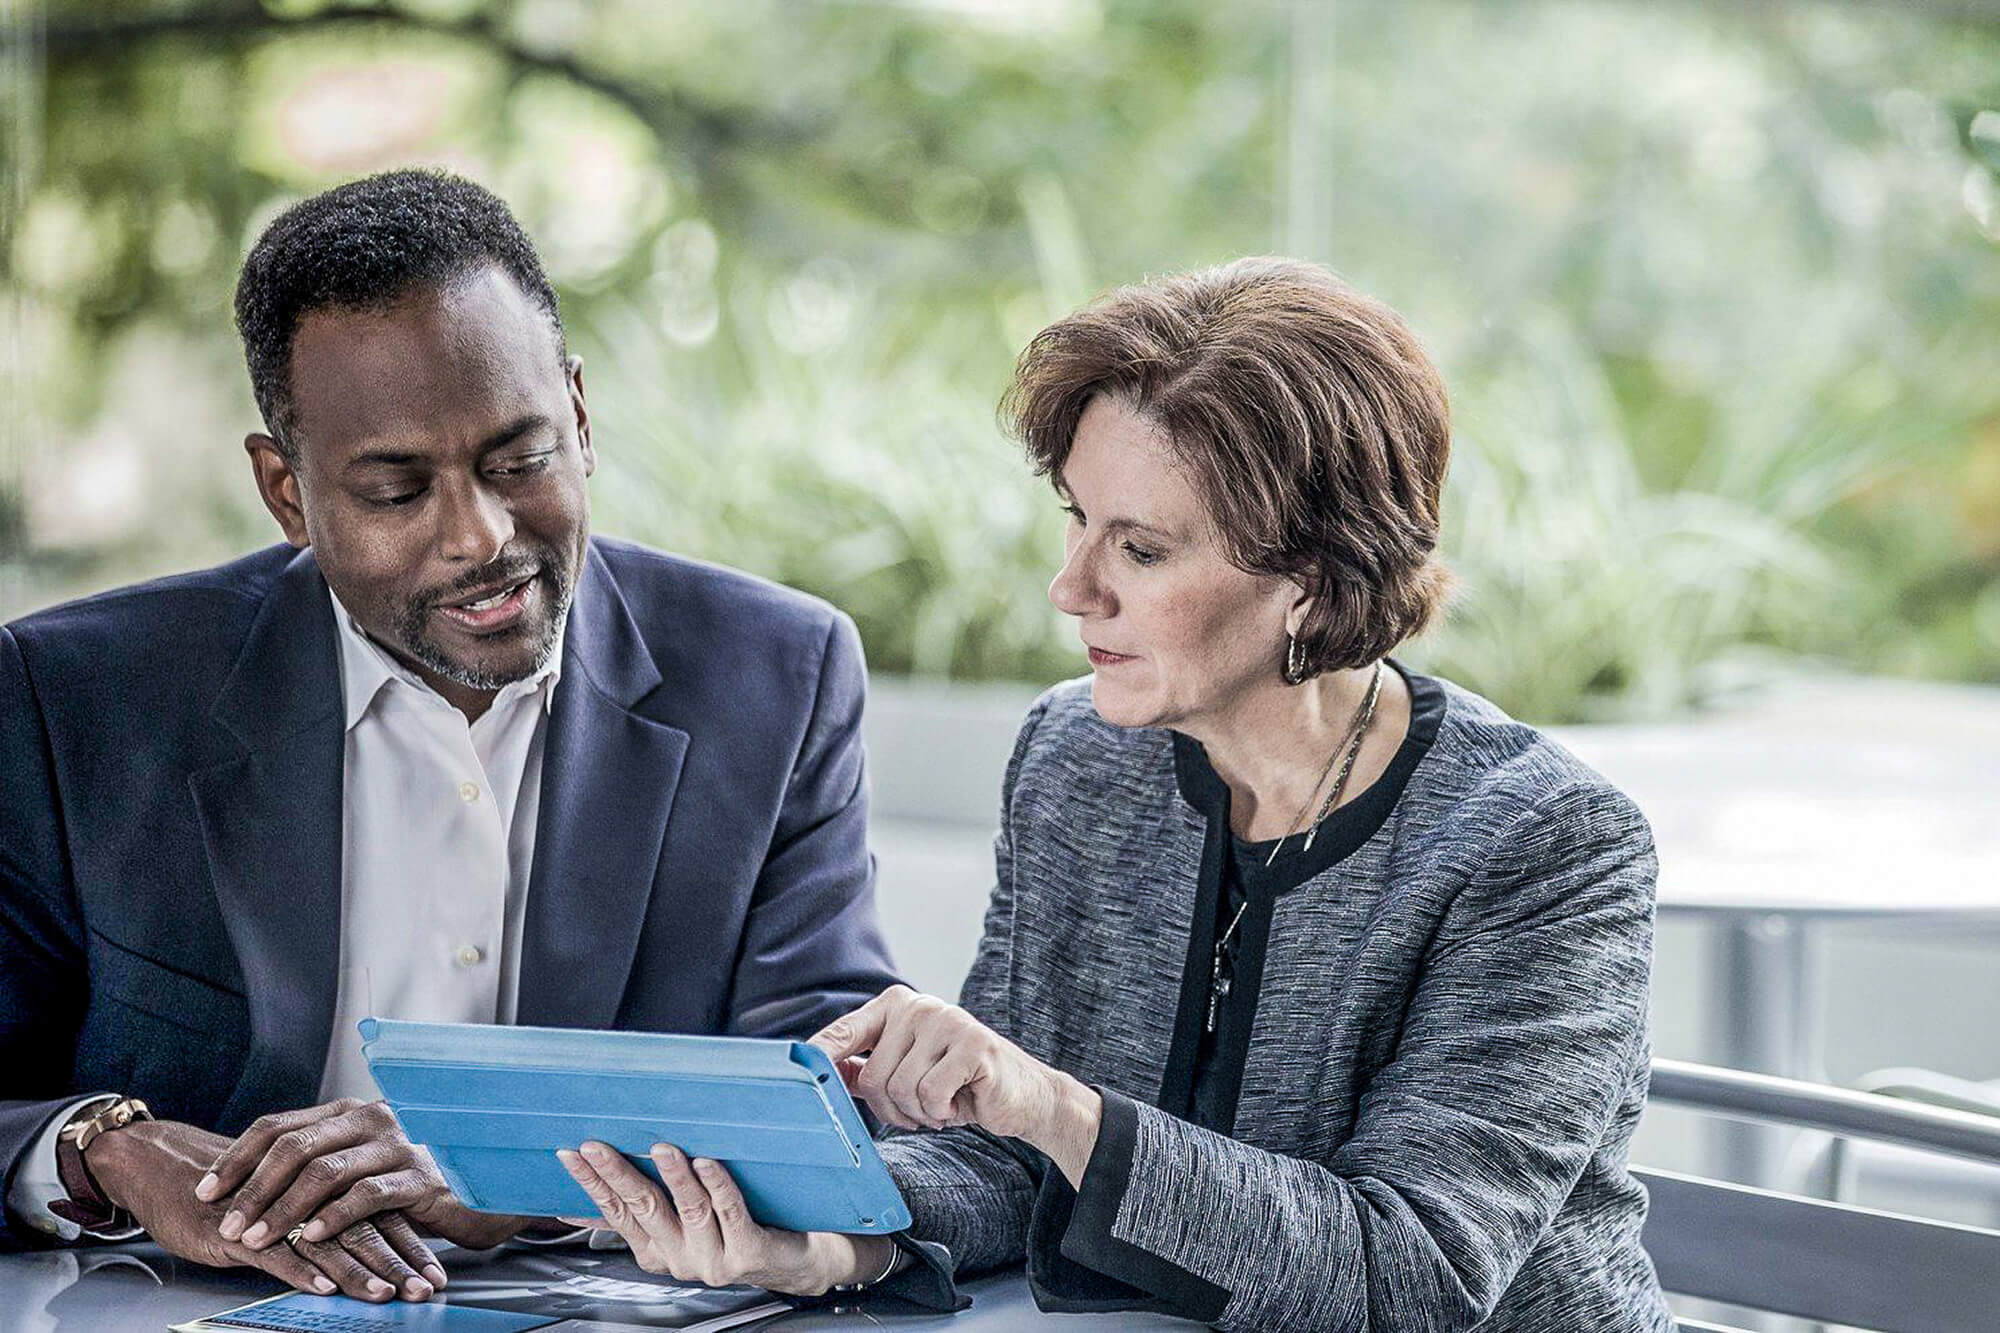 Man and Woman discussing over mobile device